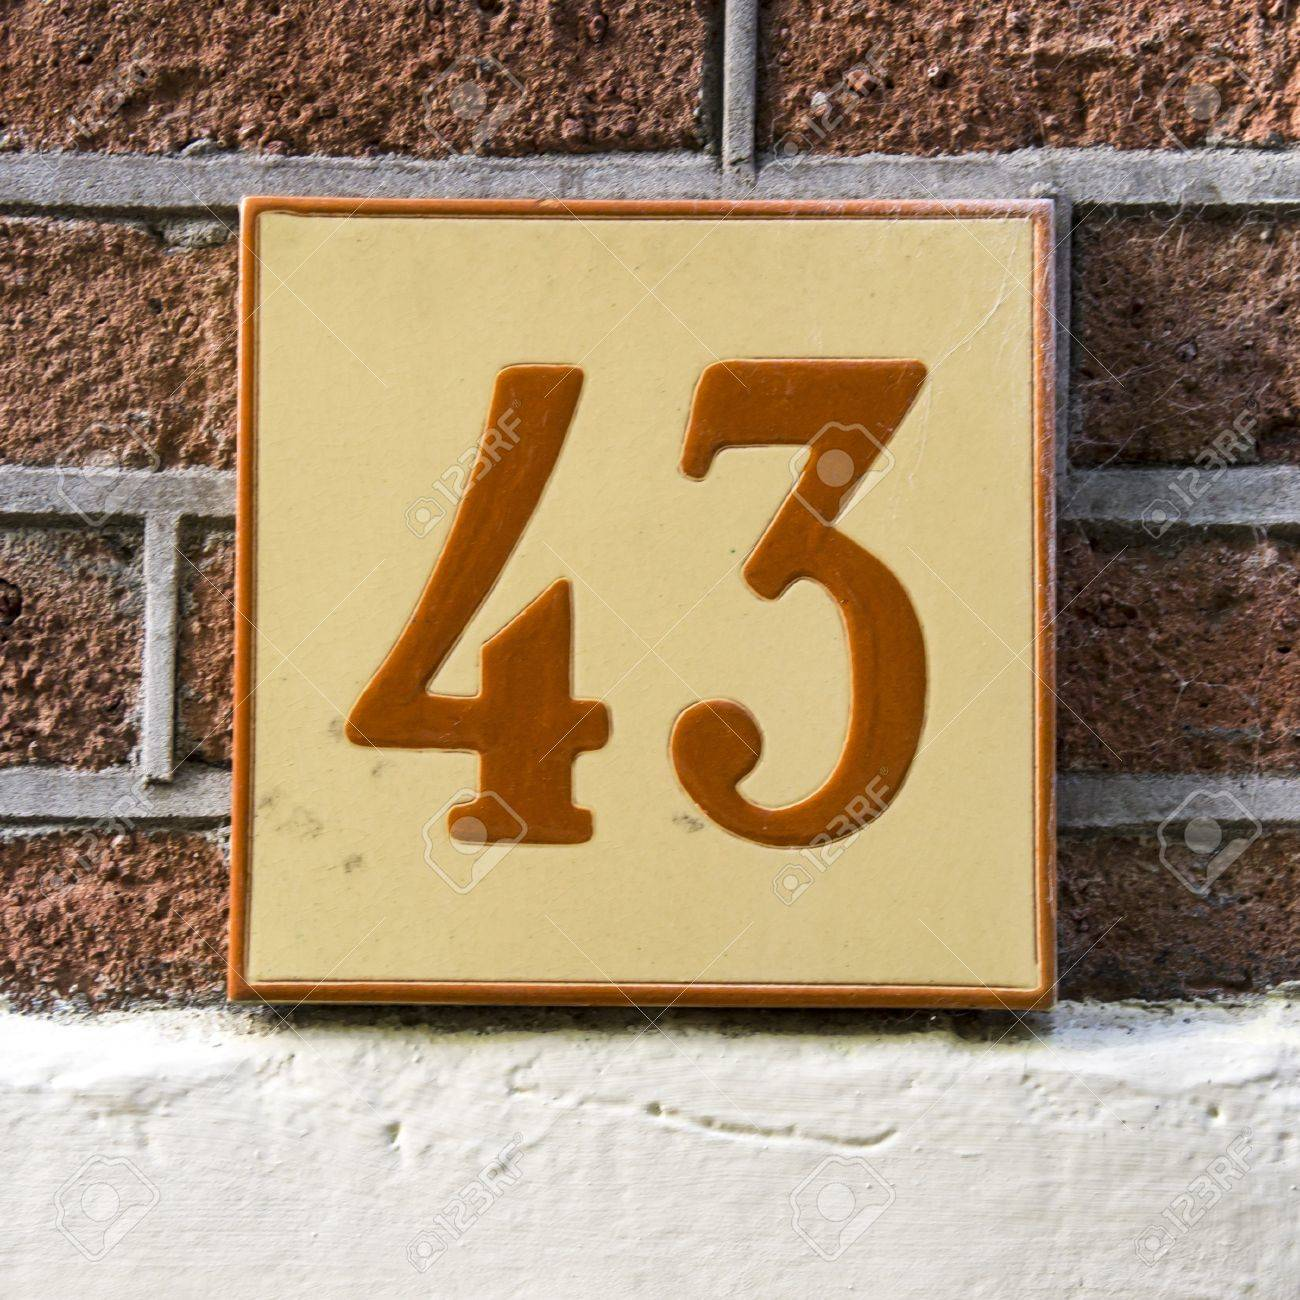 Ceramic tile house numbers images tile flooring design ideas ceramic tile with the house number forty three stock photo ceramic tile with the house number dailygadgetfo Images